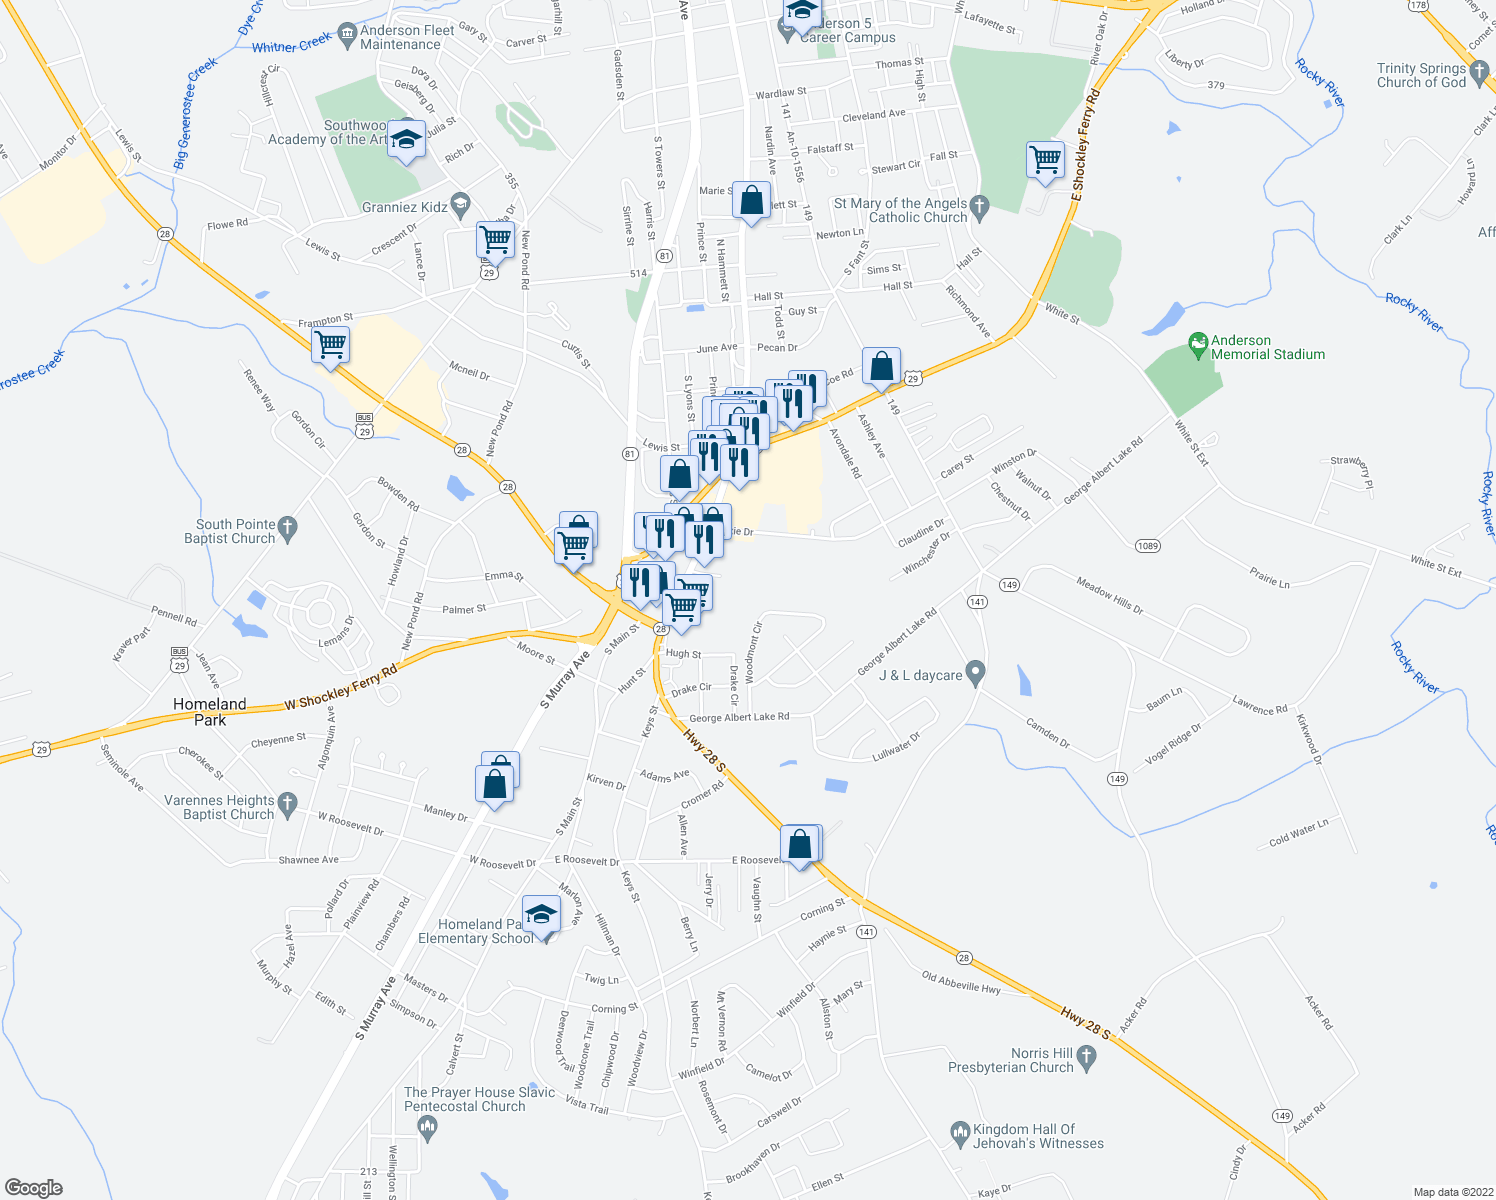 101 Darby Lane  Anderson SC   Walk Score map of restaurants  bars  coffee shops  grocery stores  and more near 101